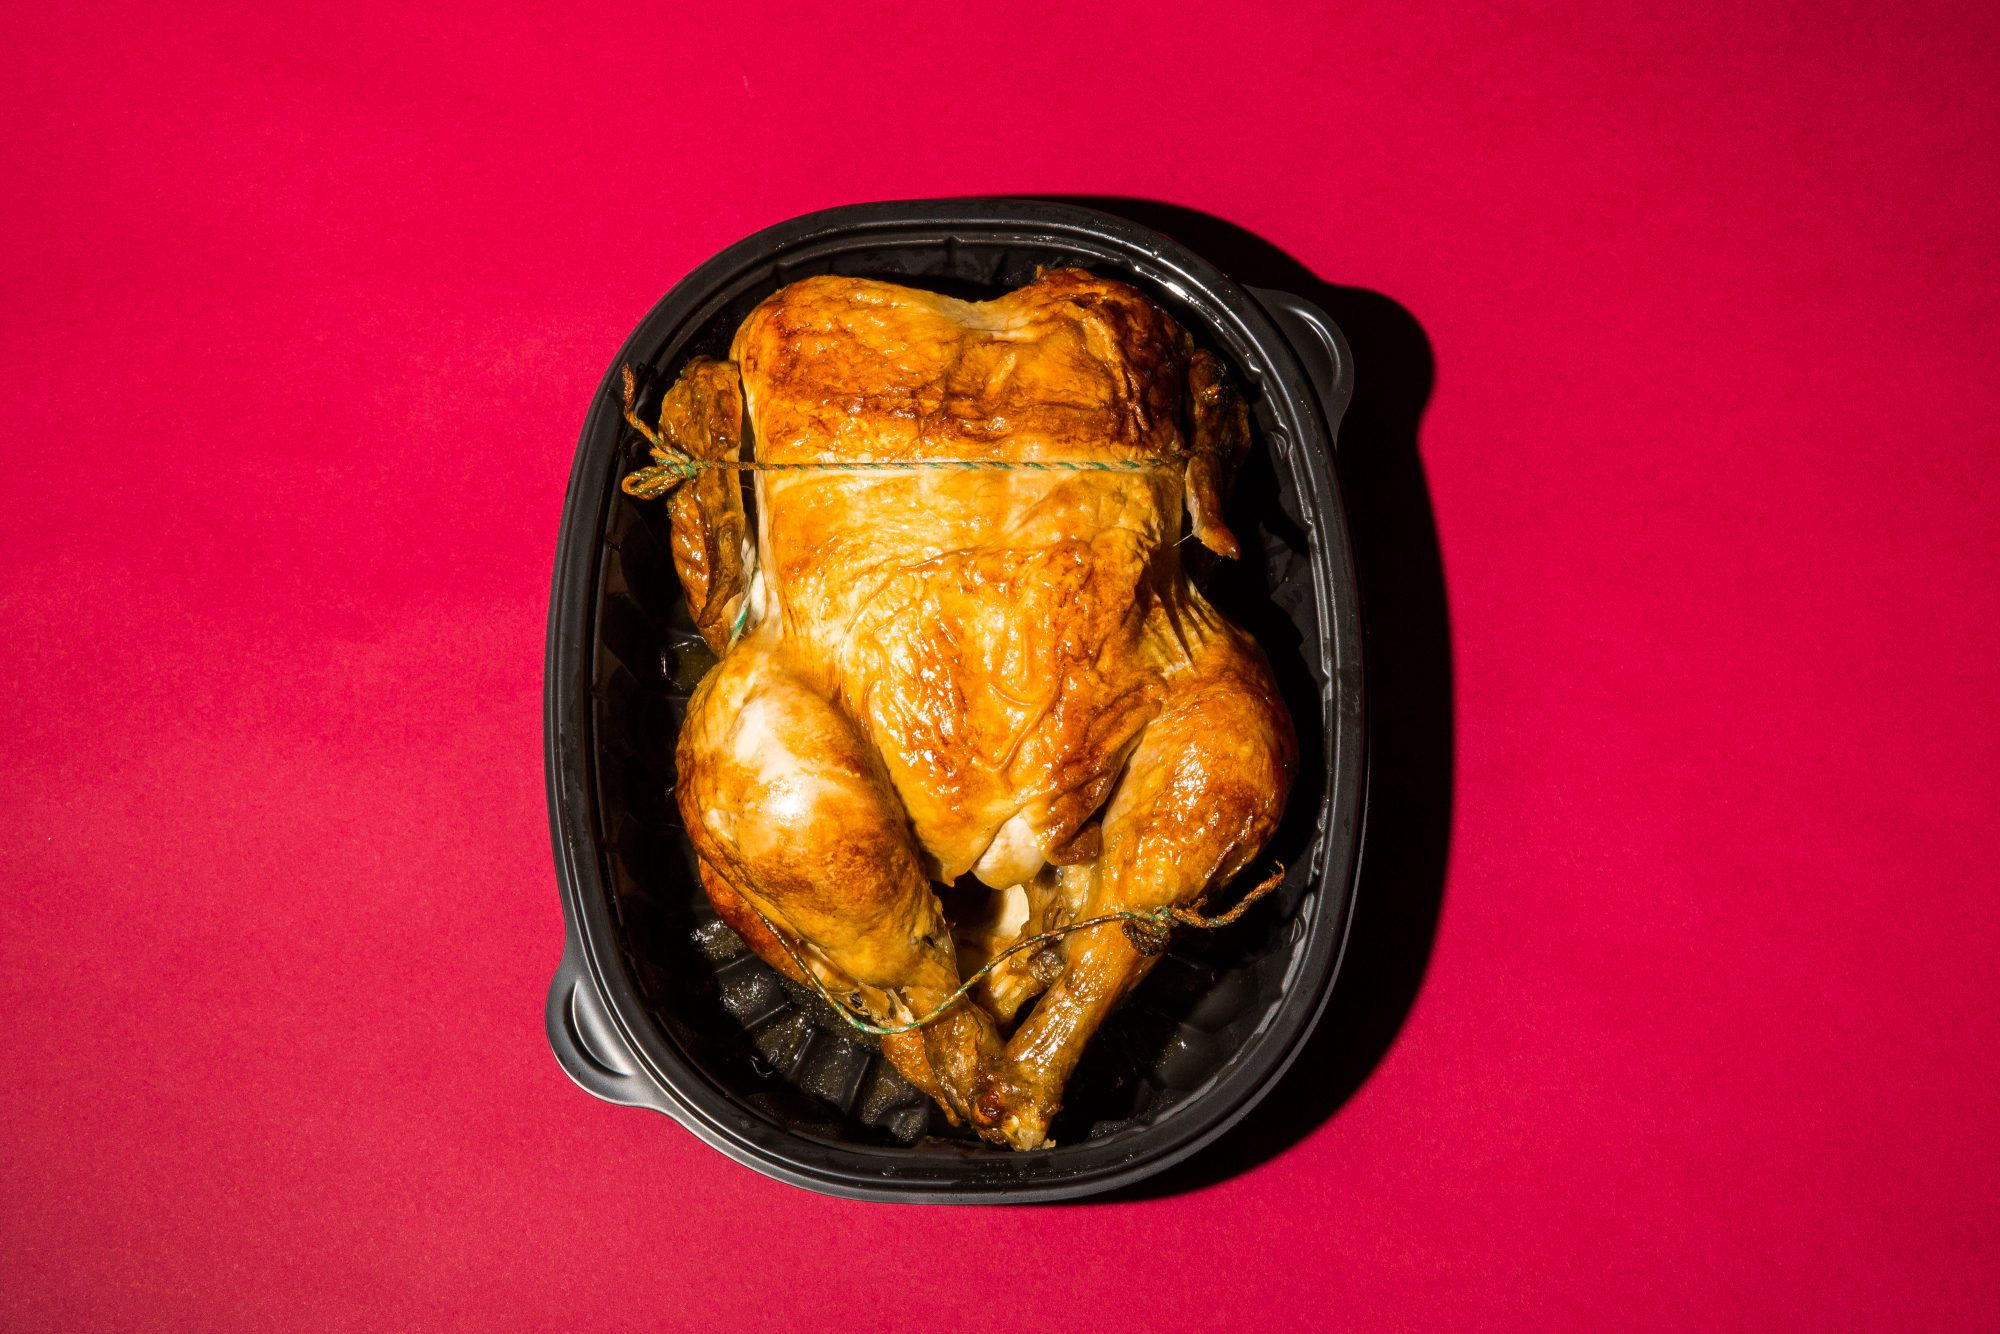 We Tried Rotisserie Chickens From 6 Grocery Stores—Here's Our Favorite